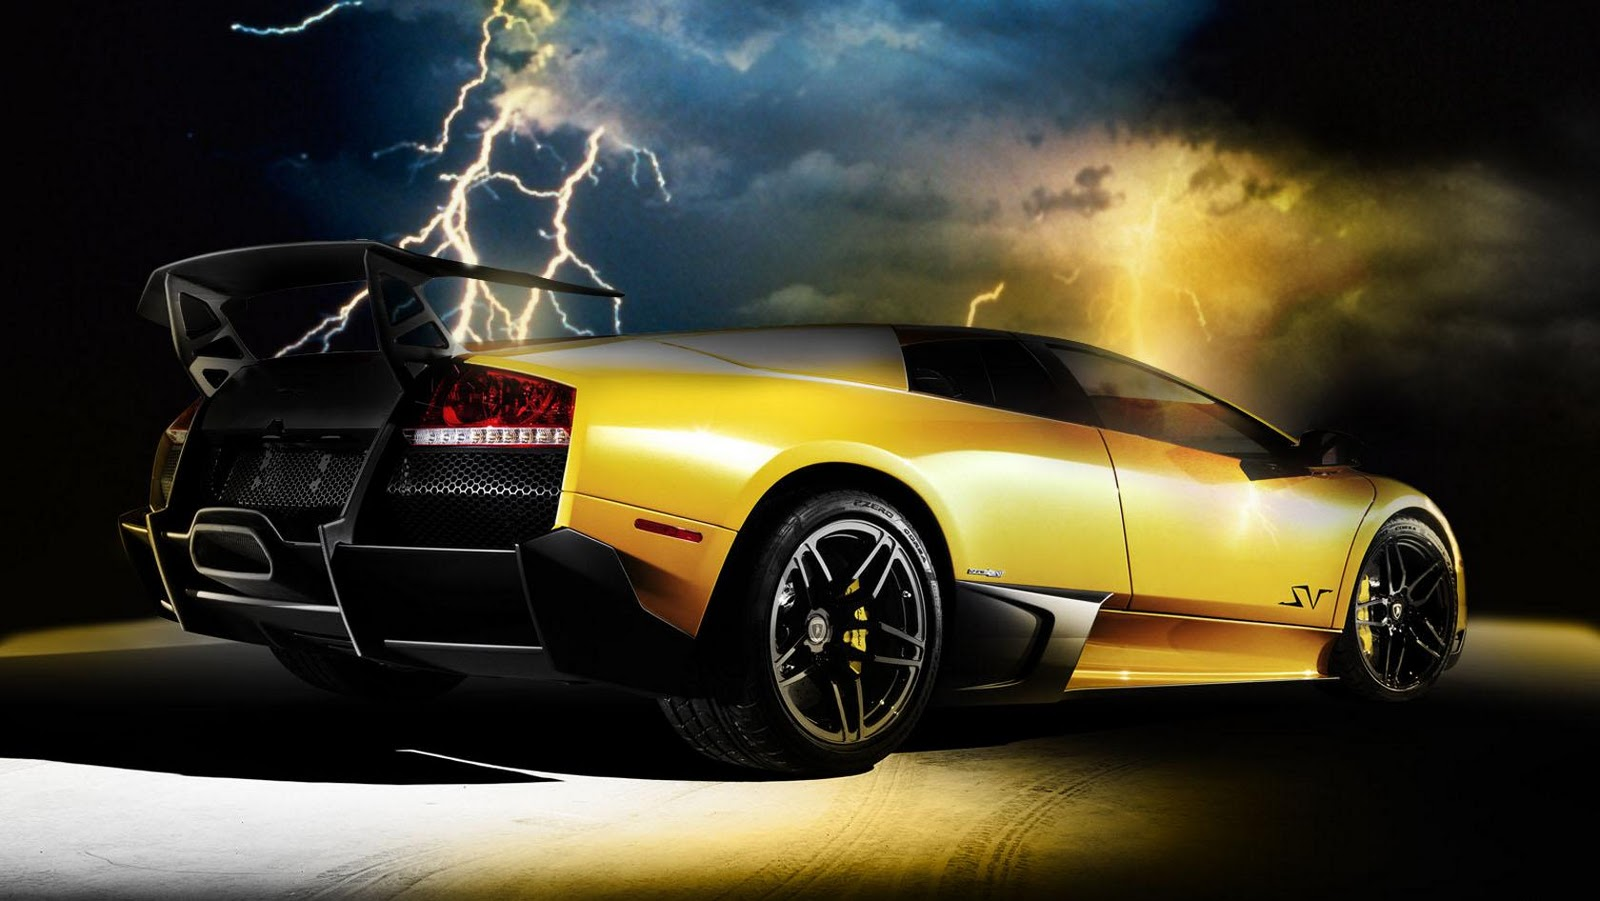 lamborghini wallpapers free download pics